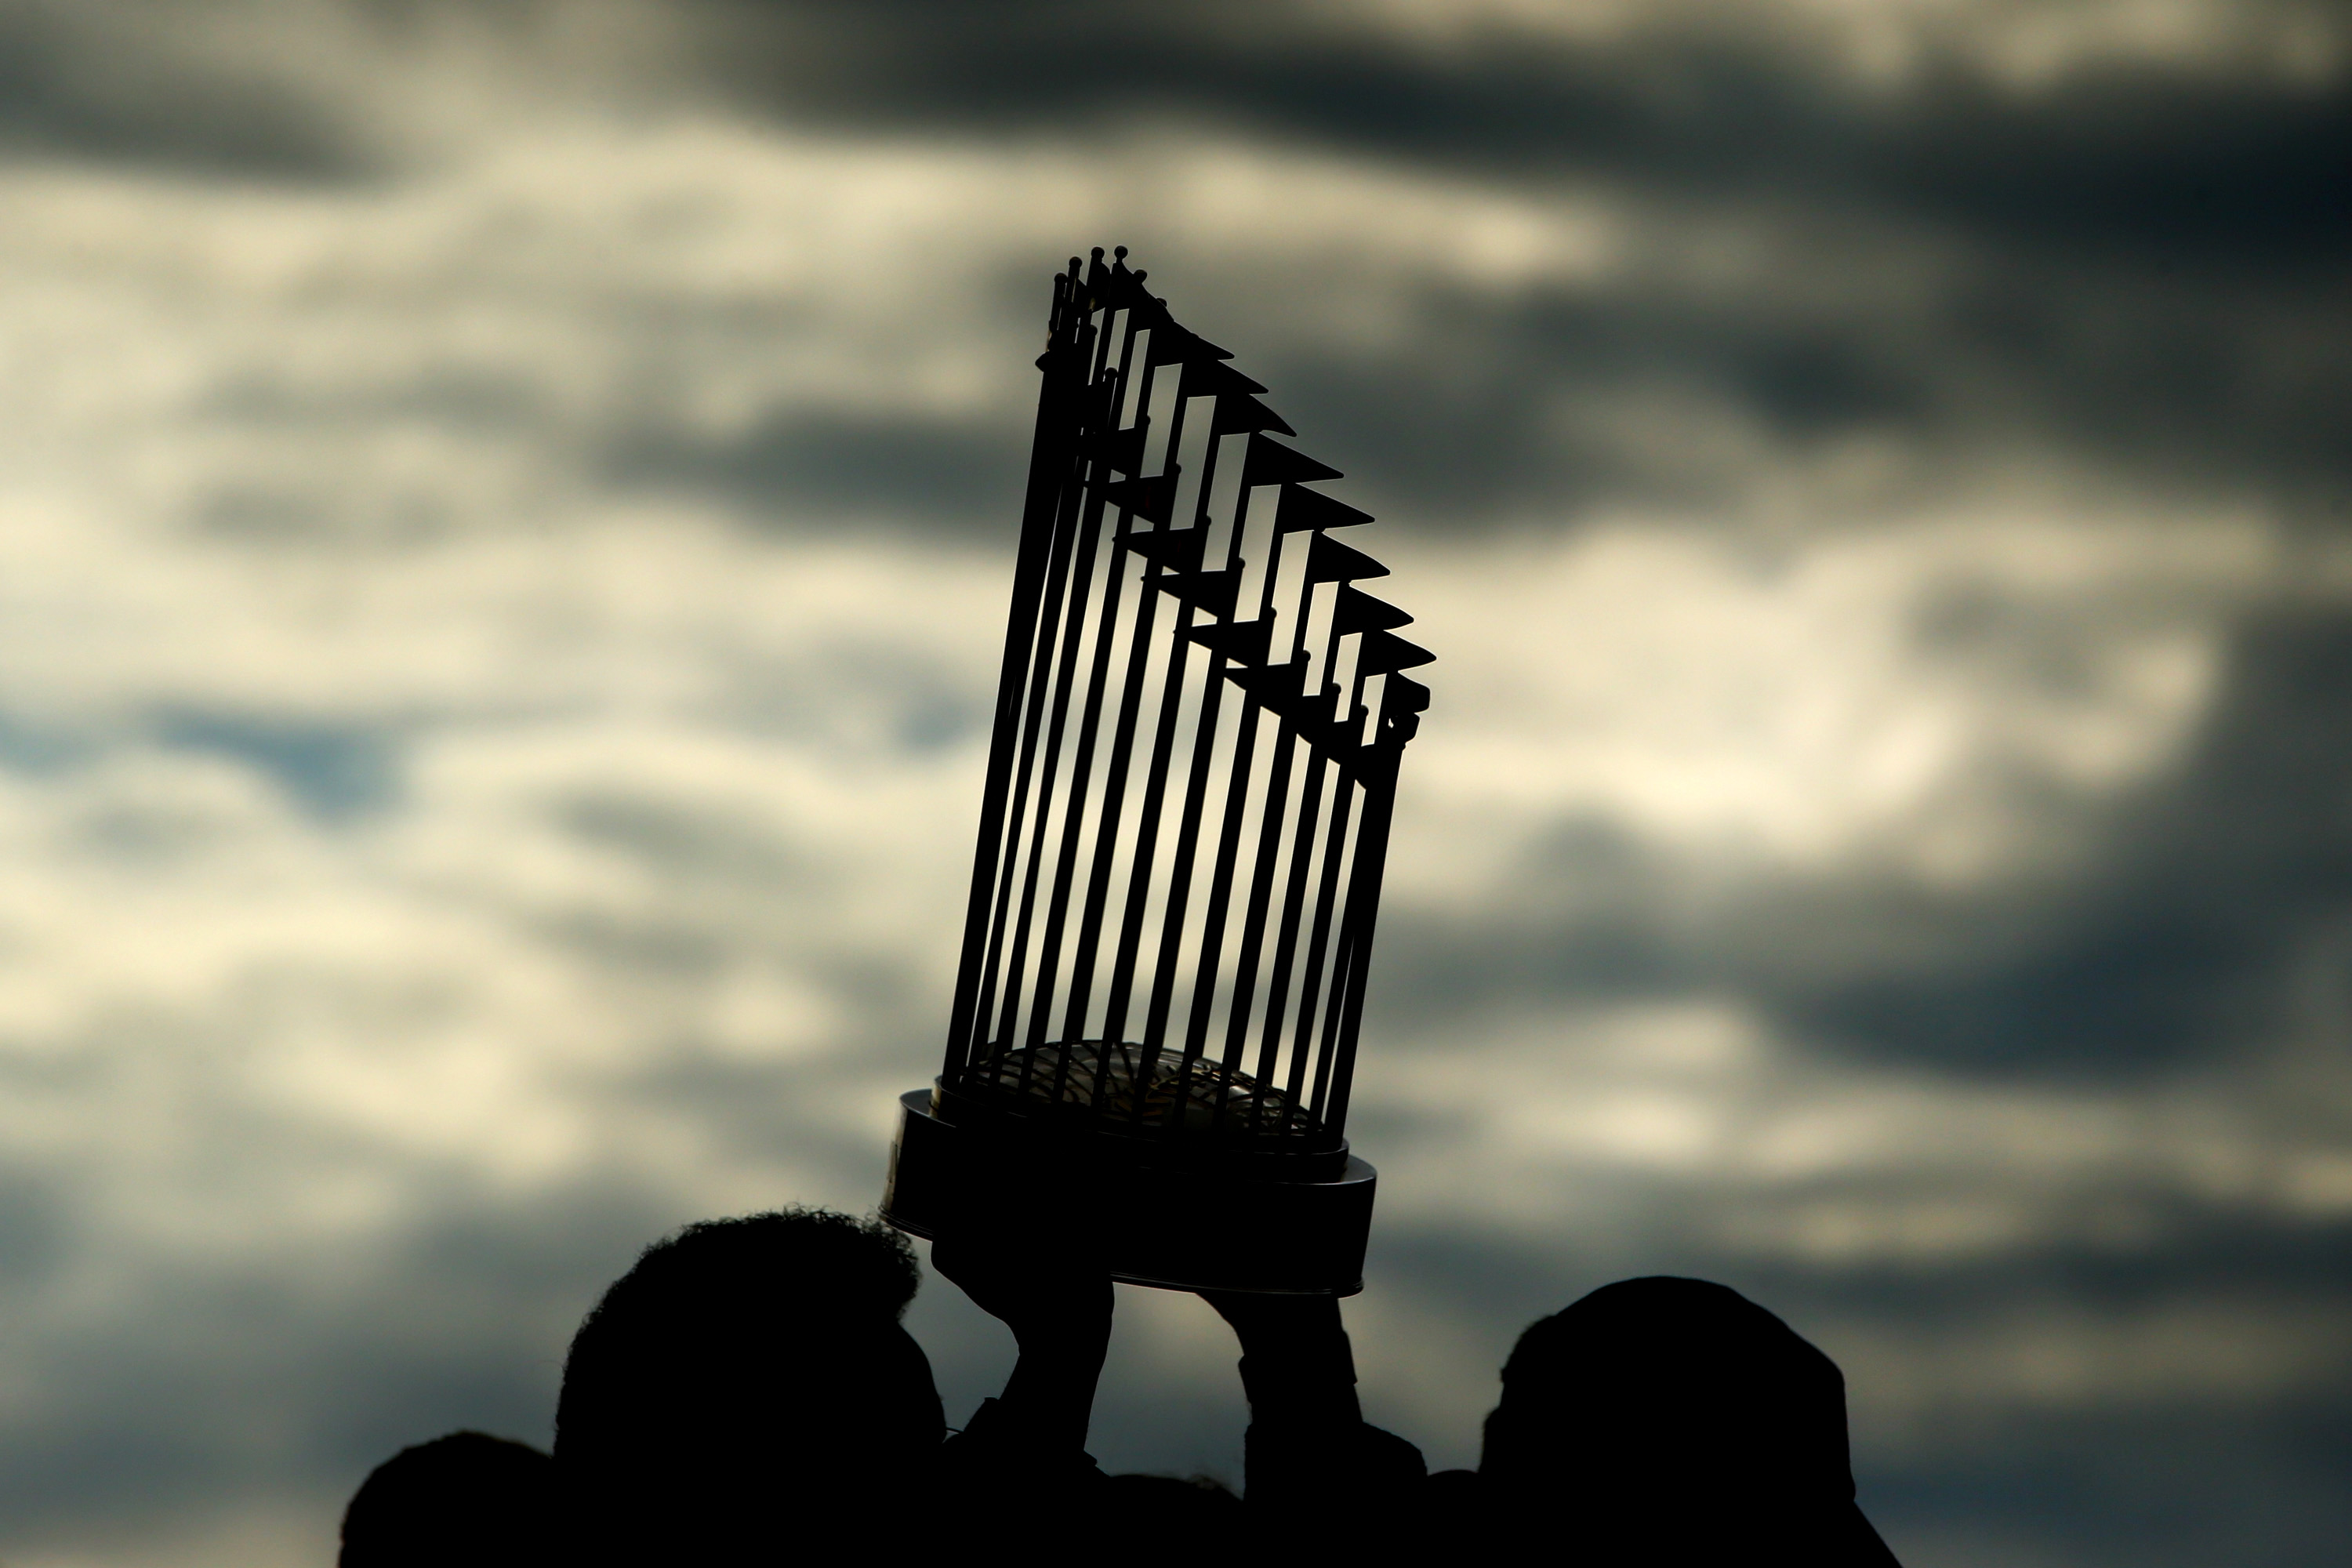 The Astros and Nationals both hope to win the World Series trophy, pictured here in a generic photo against a pretty sky.